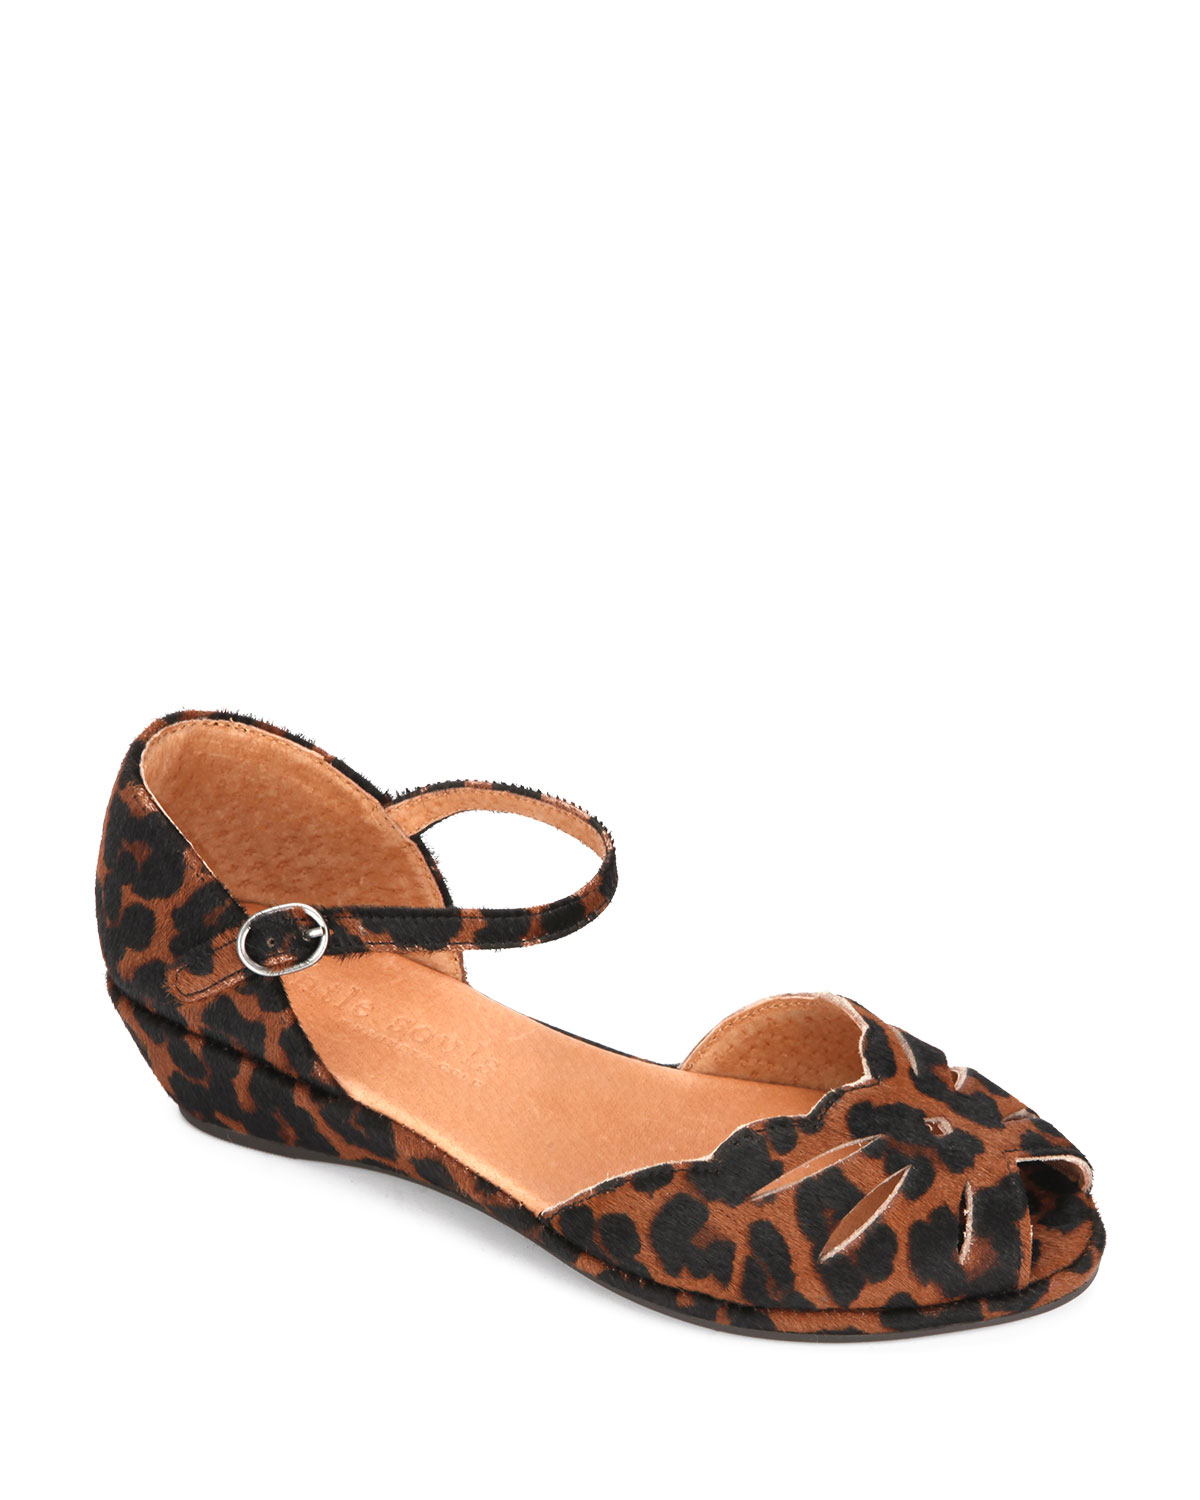 Lilly Moon Leopard Demi-Wedge d'Orsay Sandal